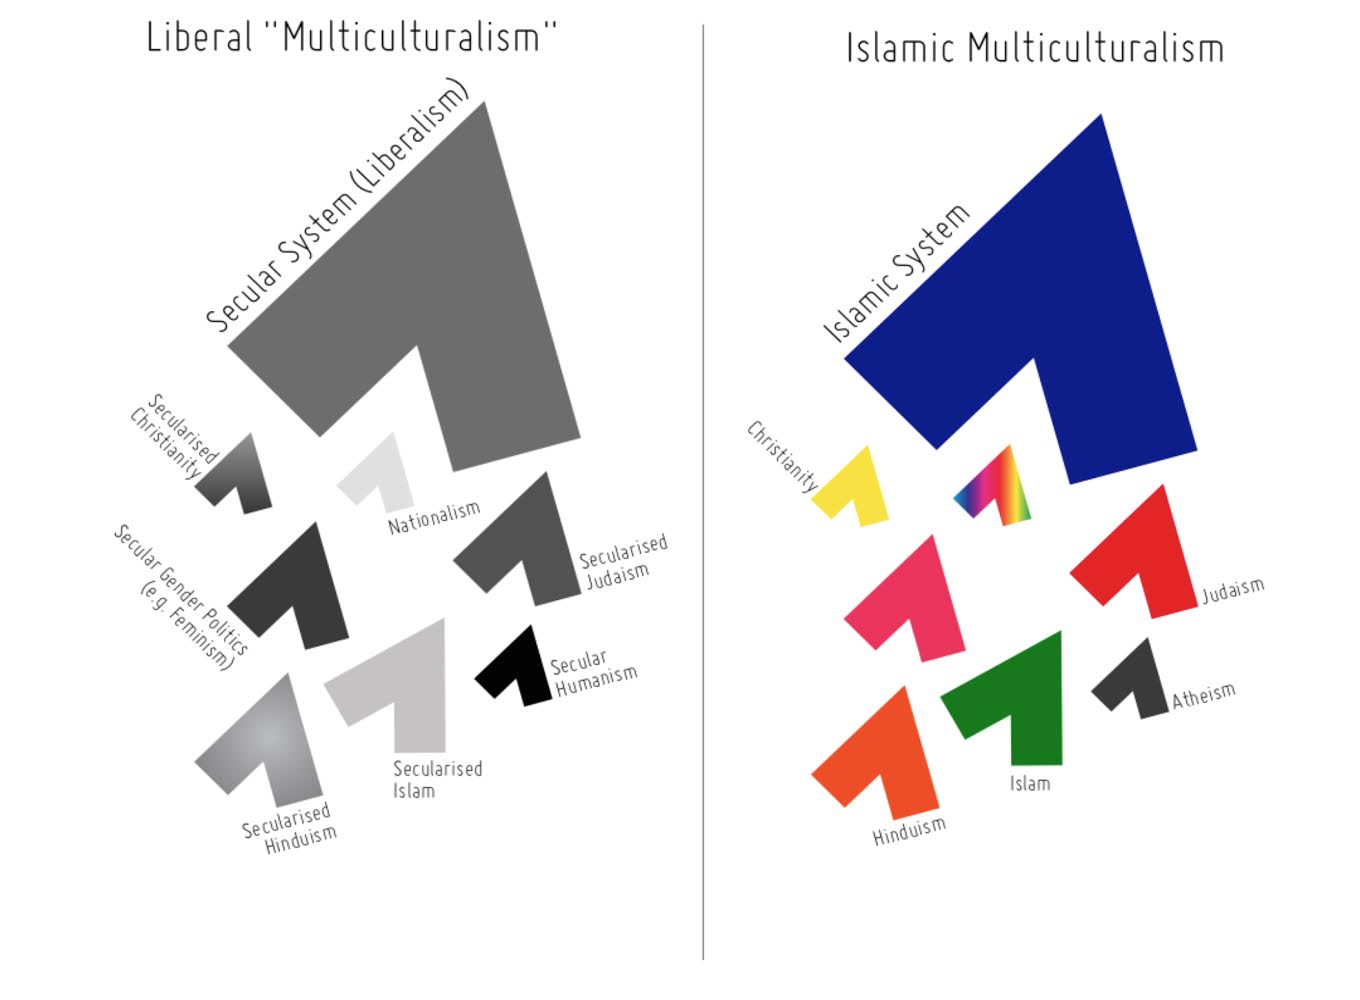 ... are simply secularised versions of Christianity or Judaism, for  example, existing under liberal democracies as just another iteration of  liberalism.